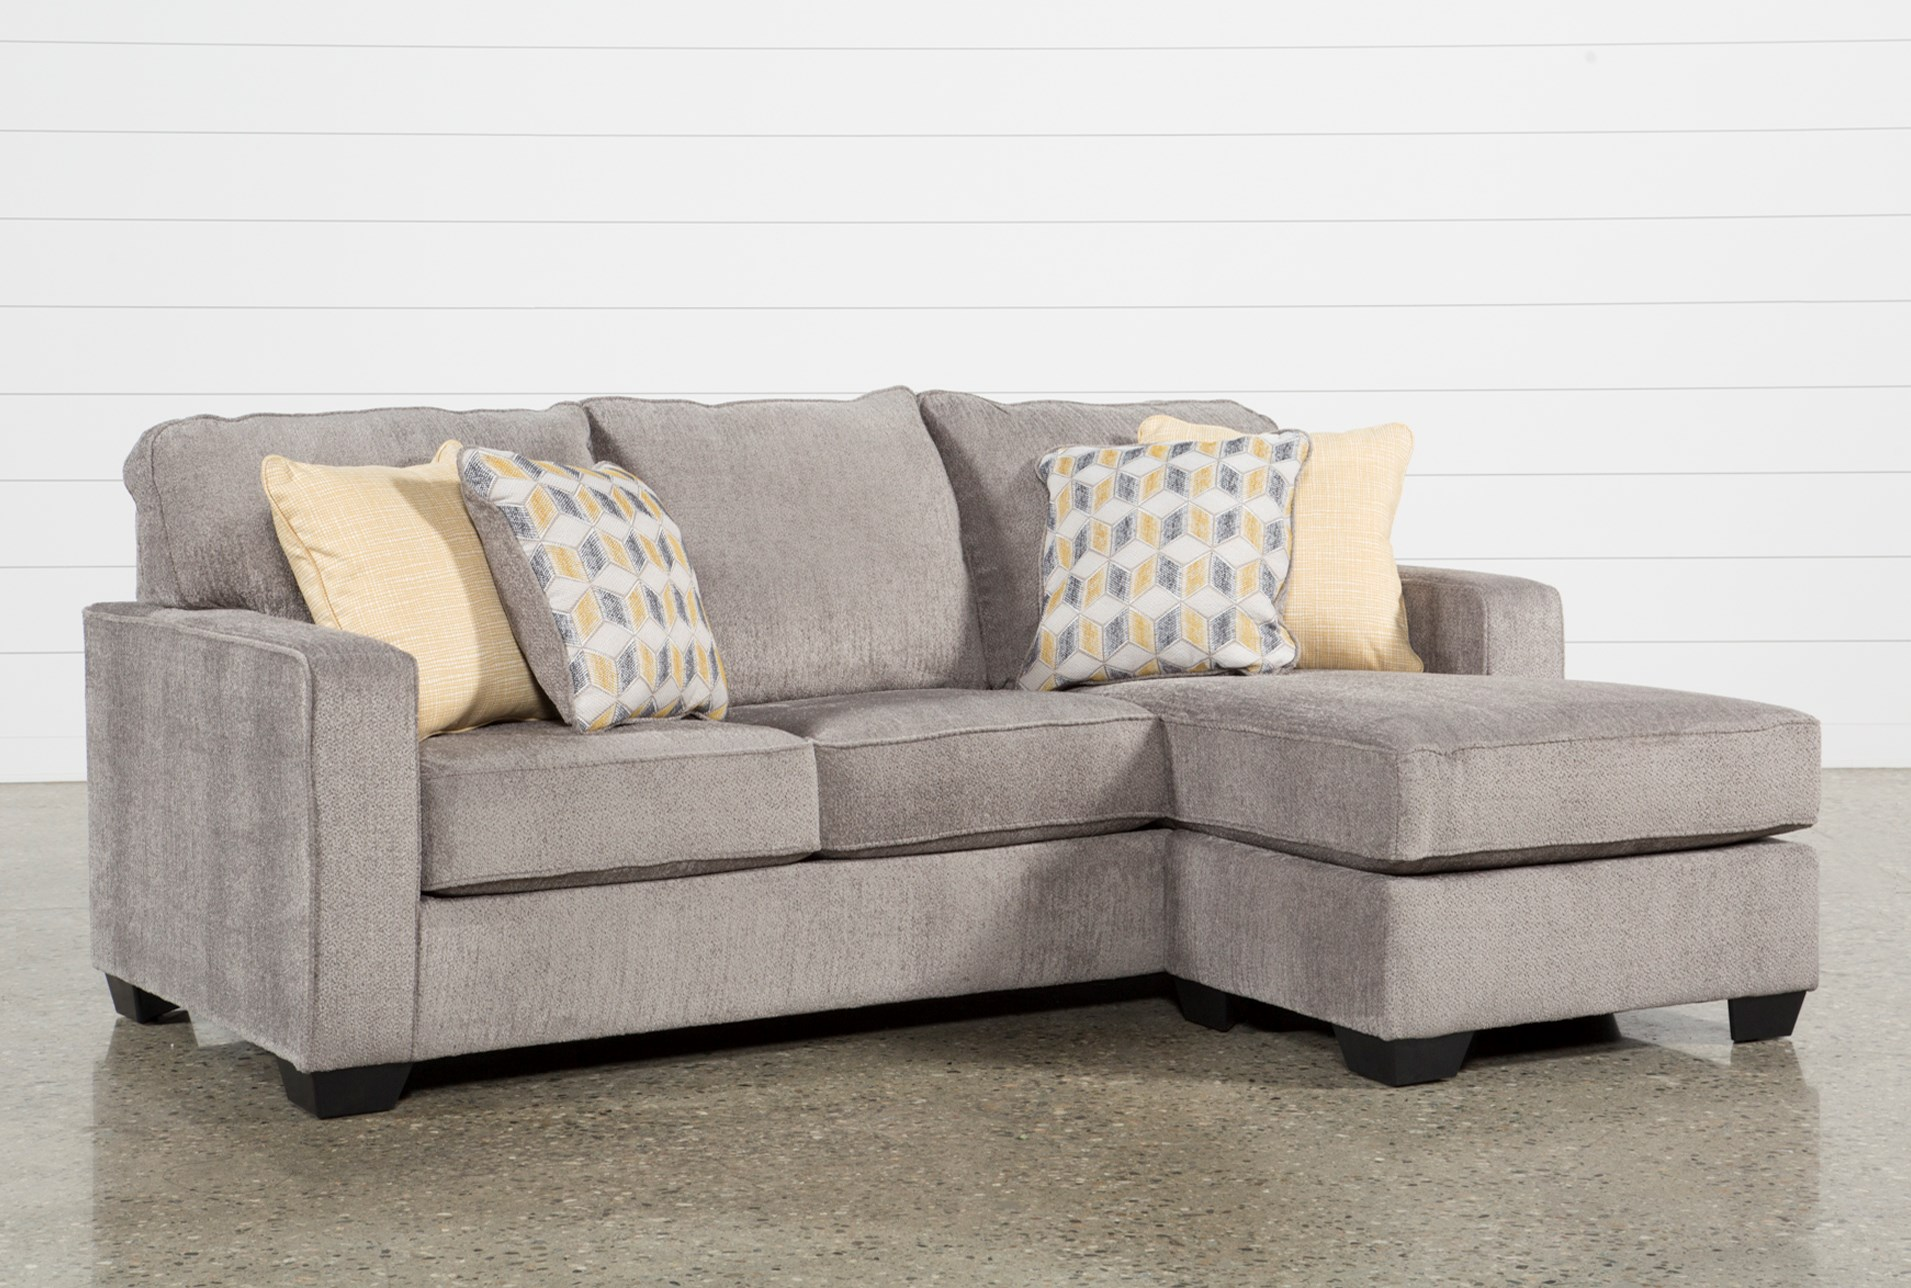 herringbone oscar sofas in blue products loaf our comfy shaker classic sofa chaise dpi